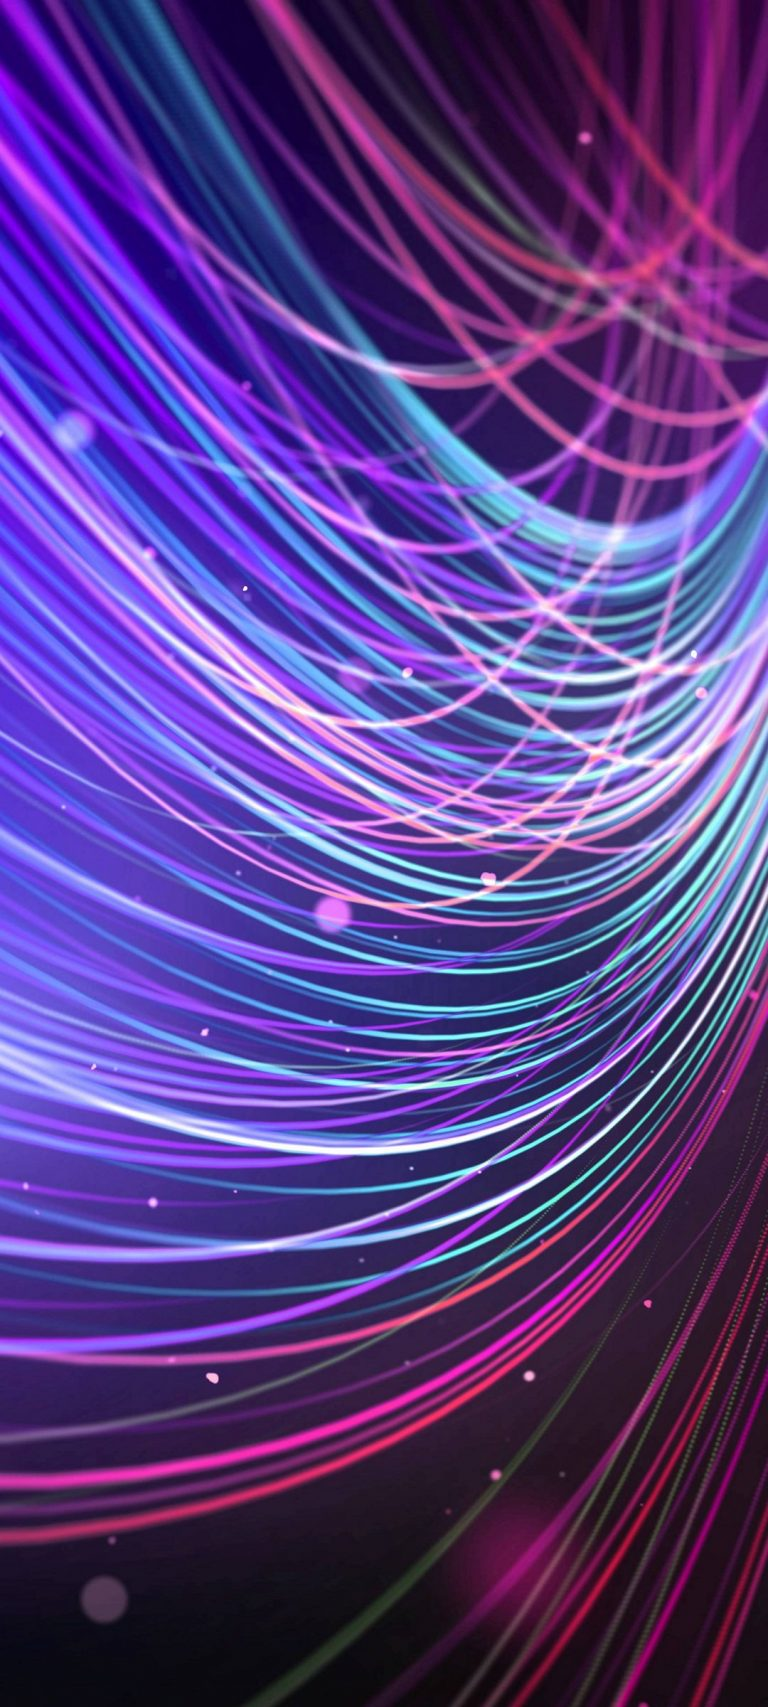 Colour Ful Wavy Lines Abstract 1080x2400 768x1707